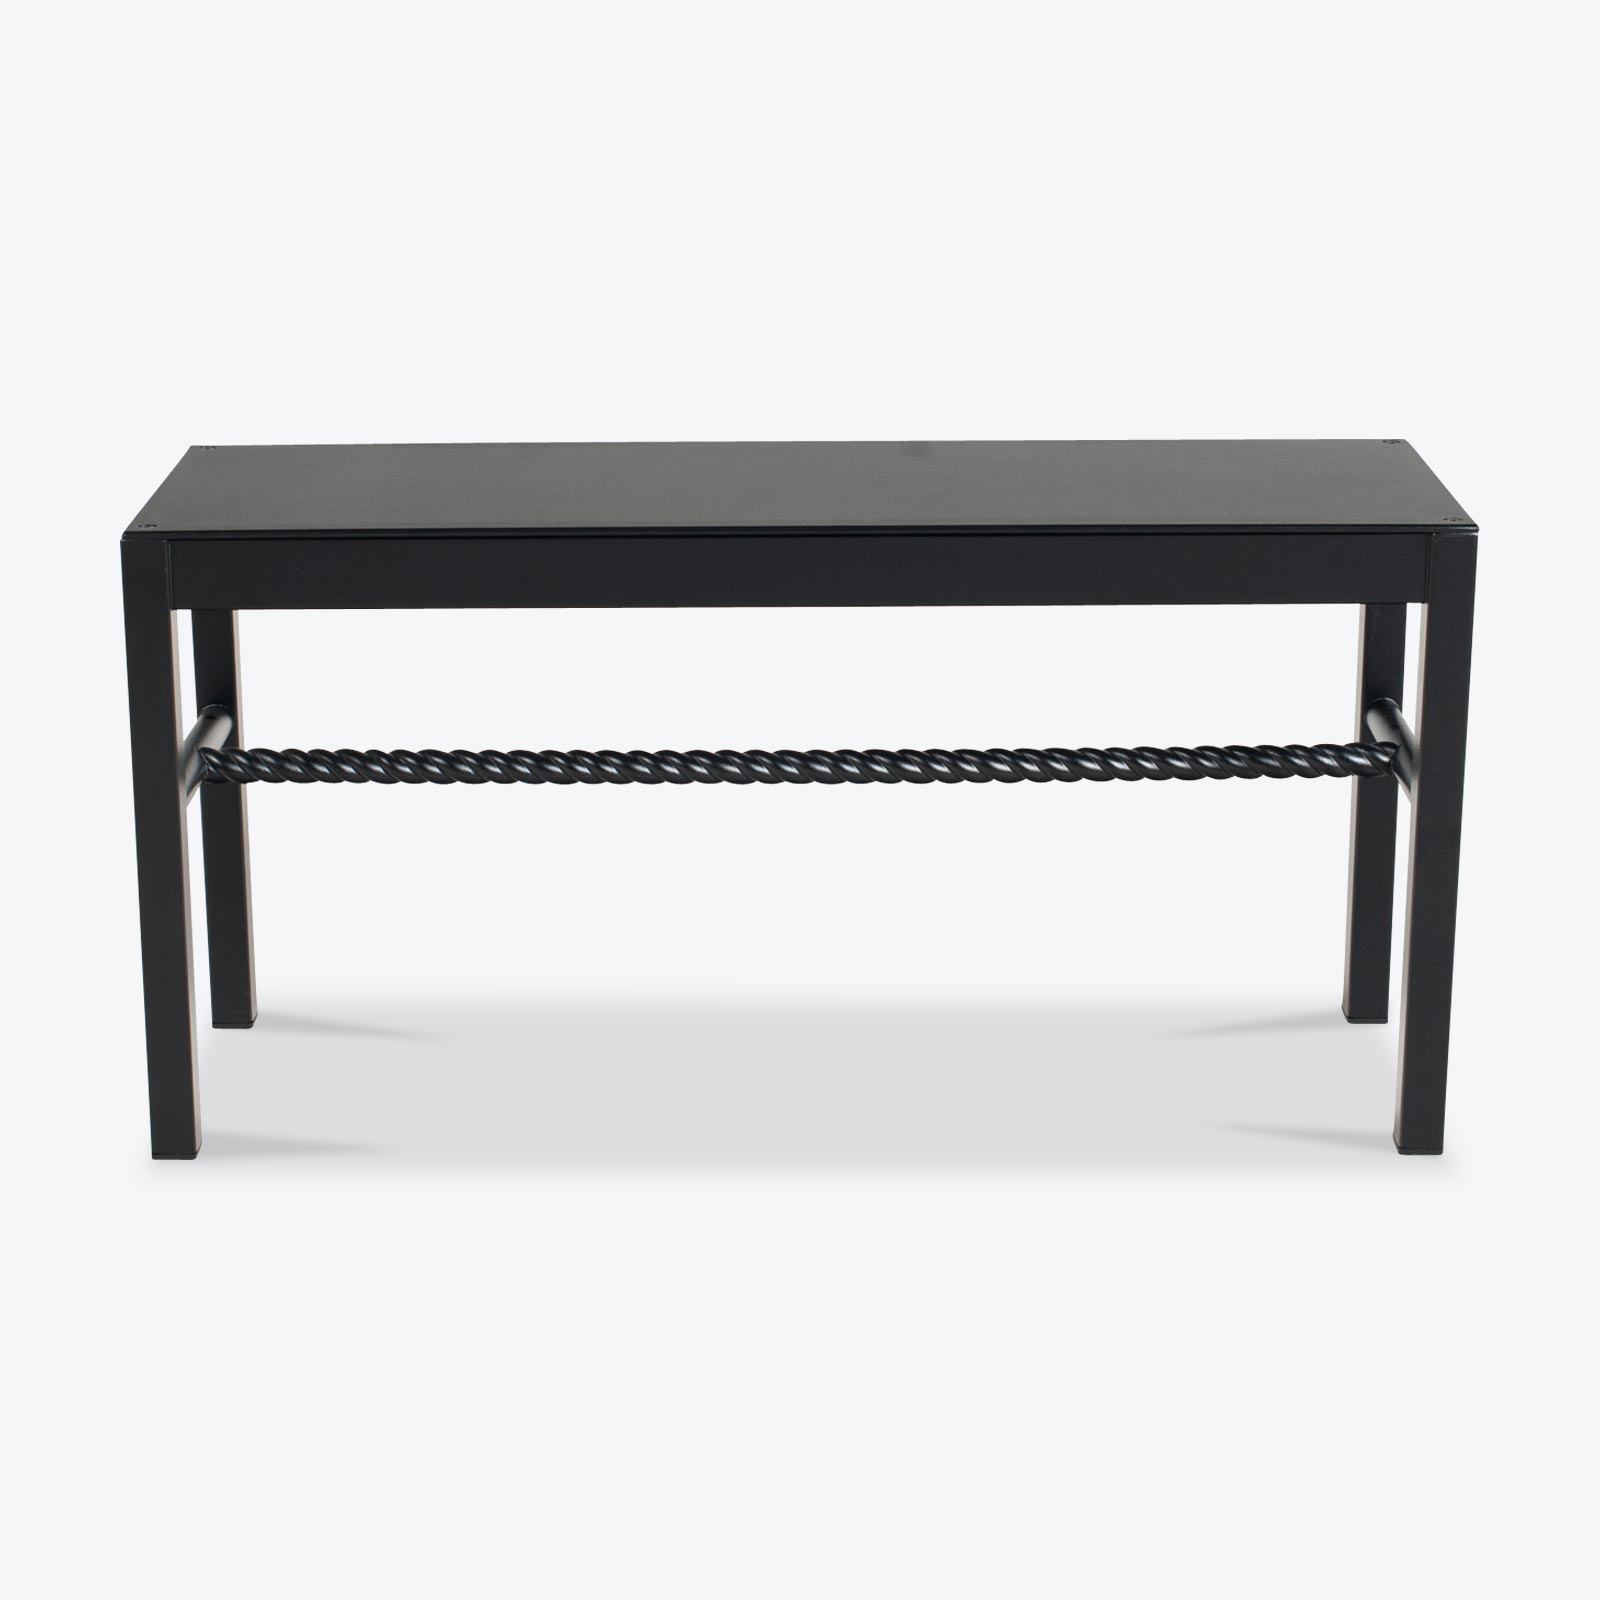 Chubby Bench In Black Powder Coated Steel By Steelotto 4.jpg